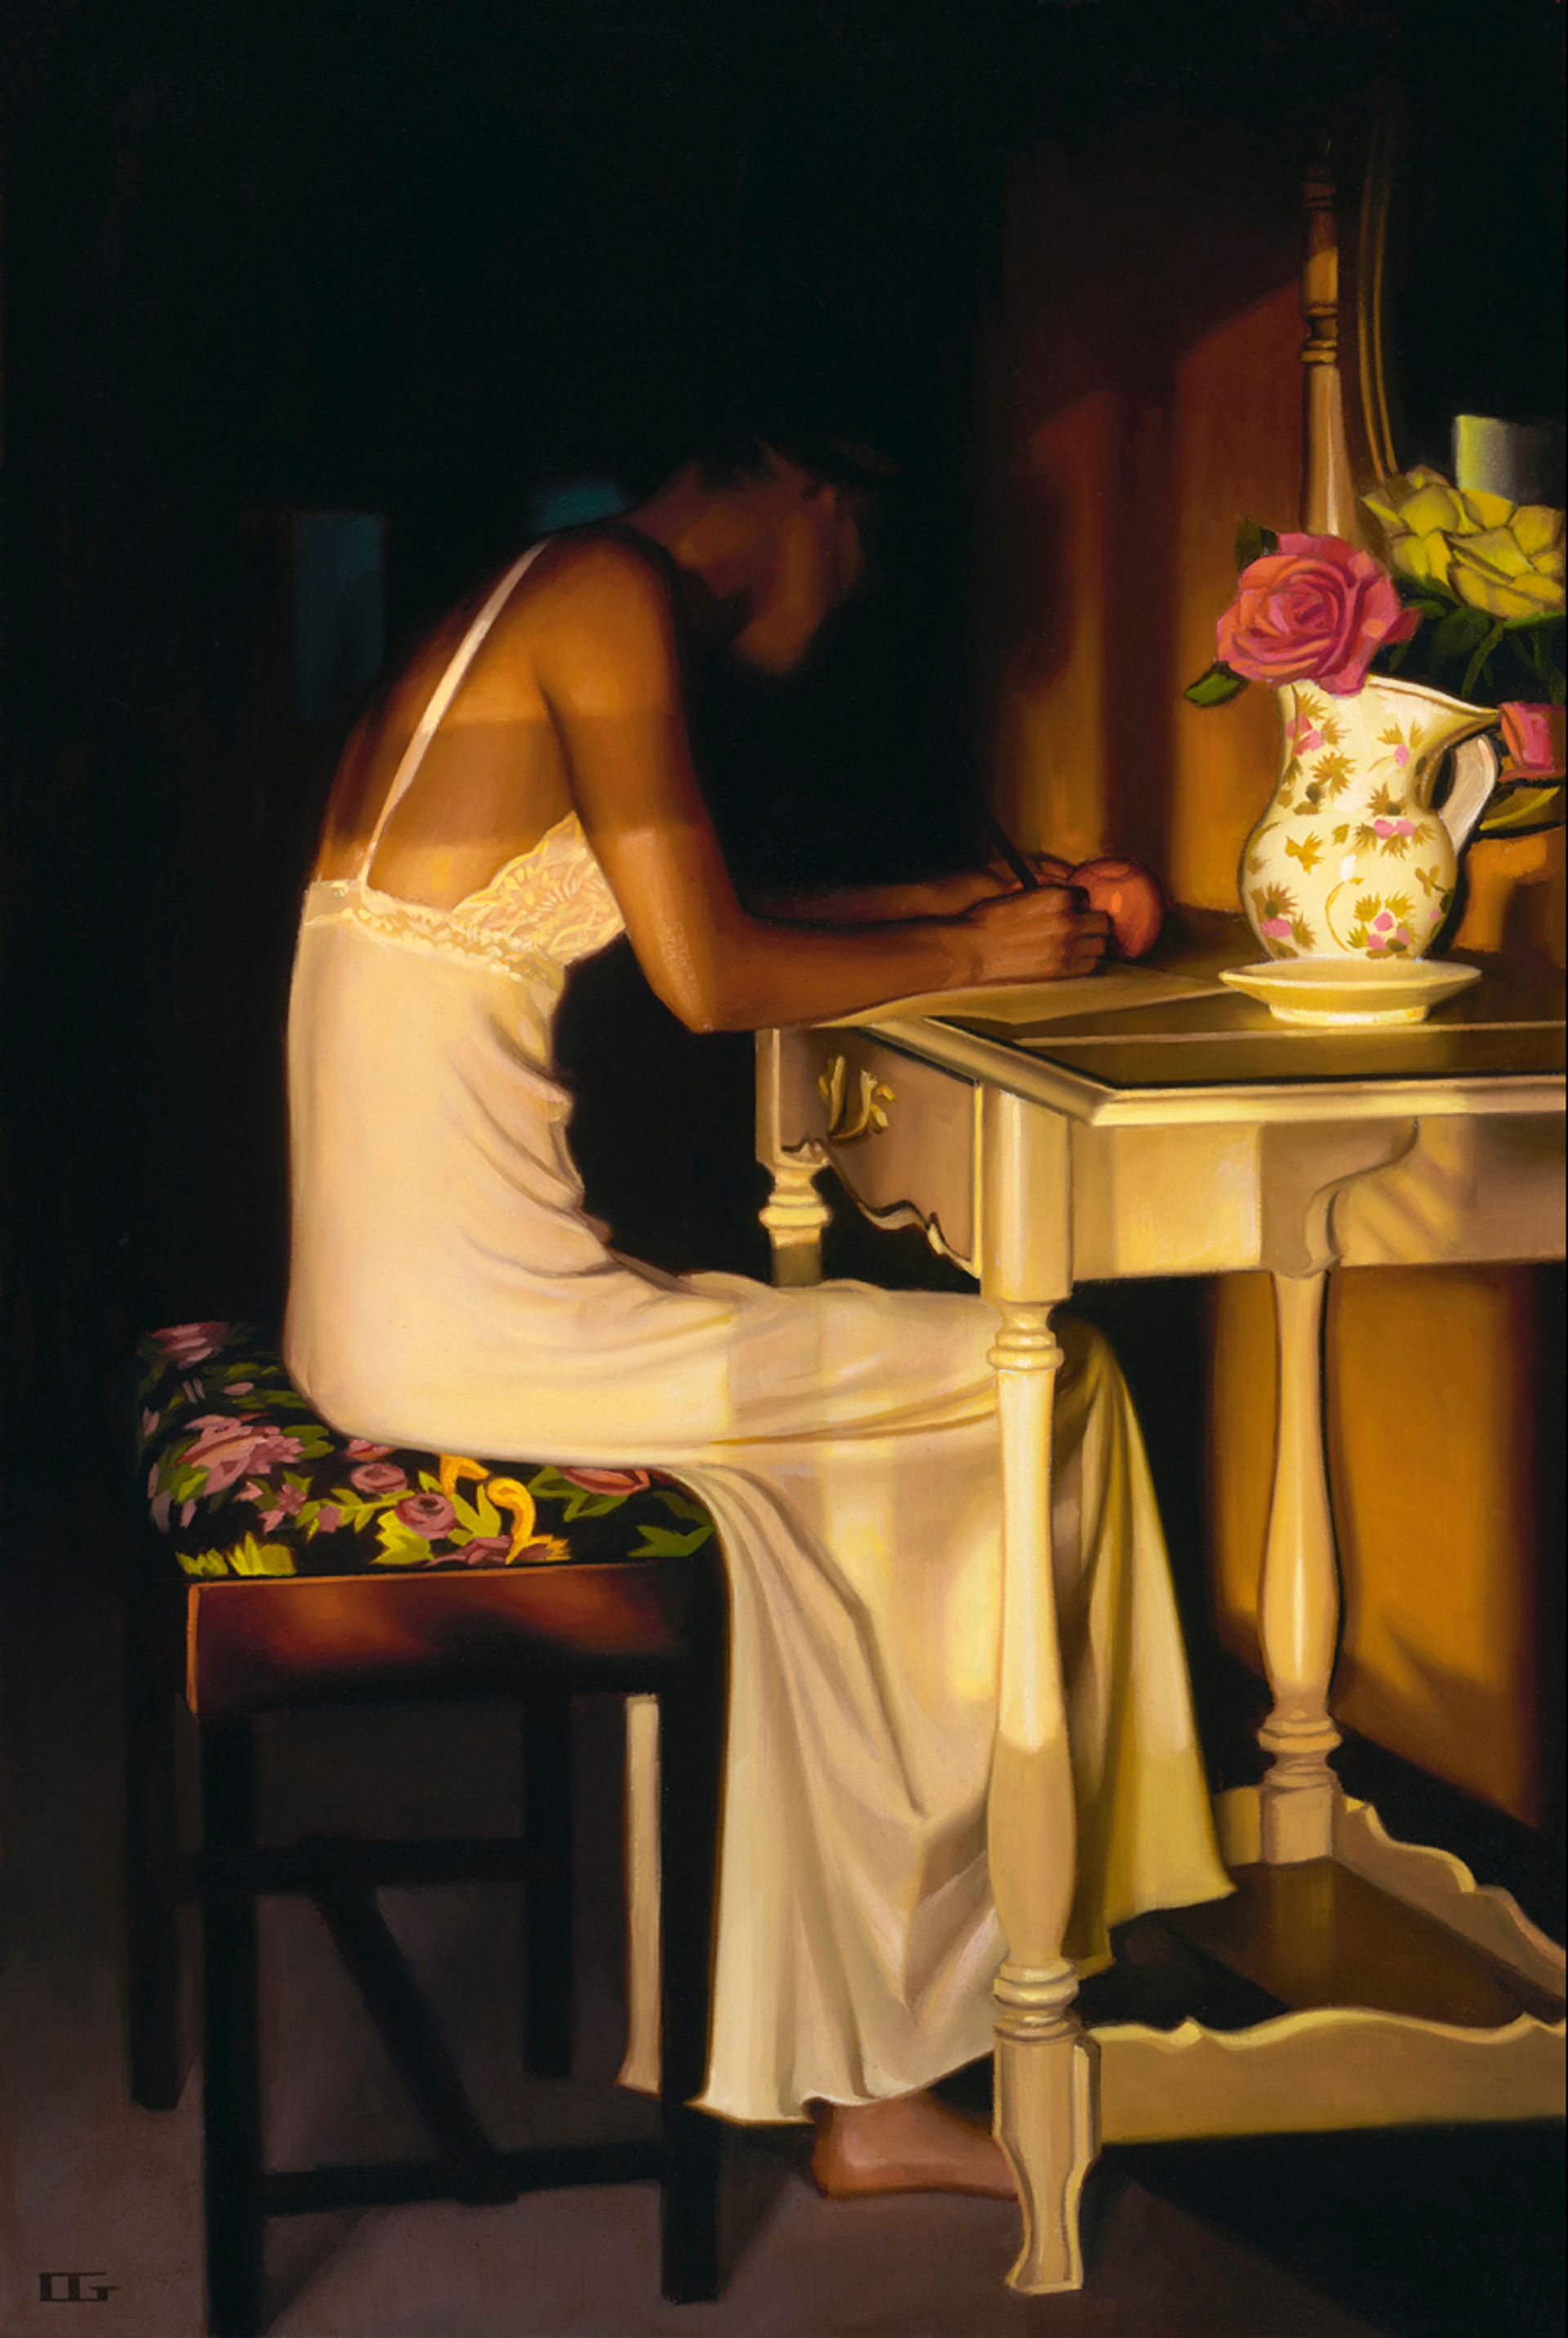 Letters (S/N) by Carrie Graber